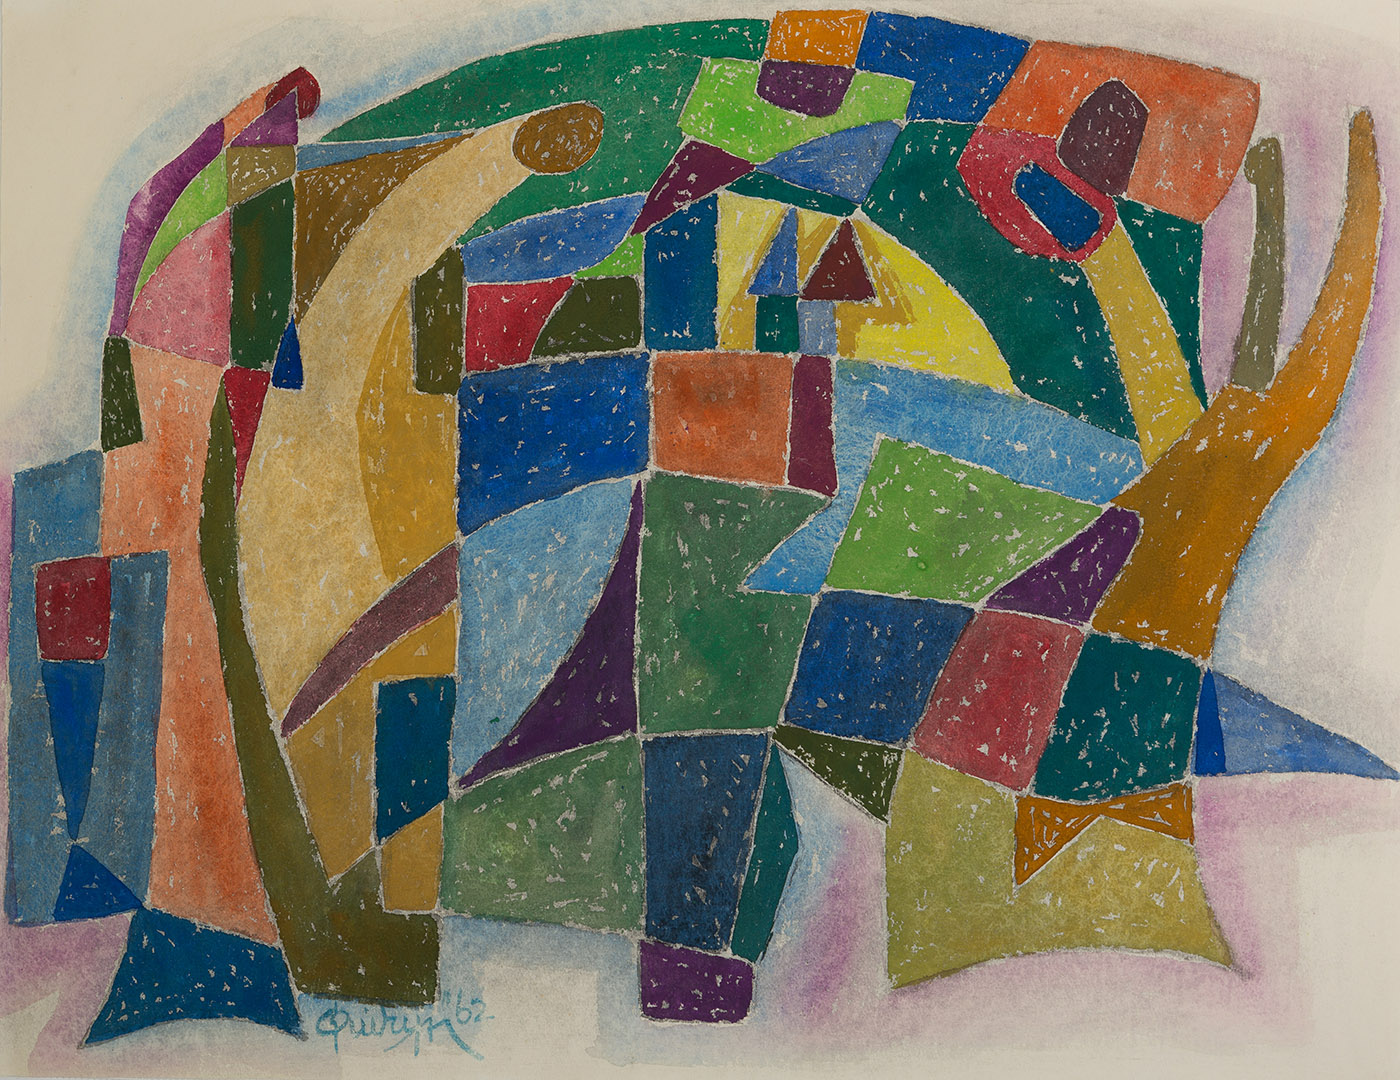 Dorpsgezicht abstract, 1962